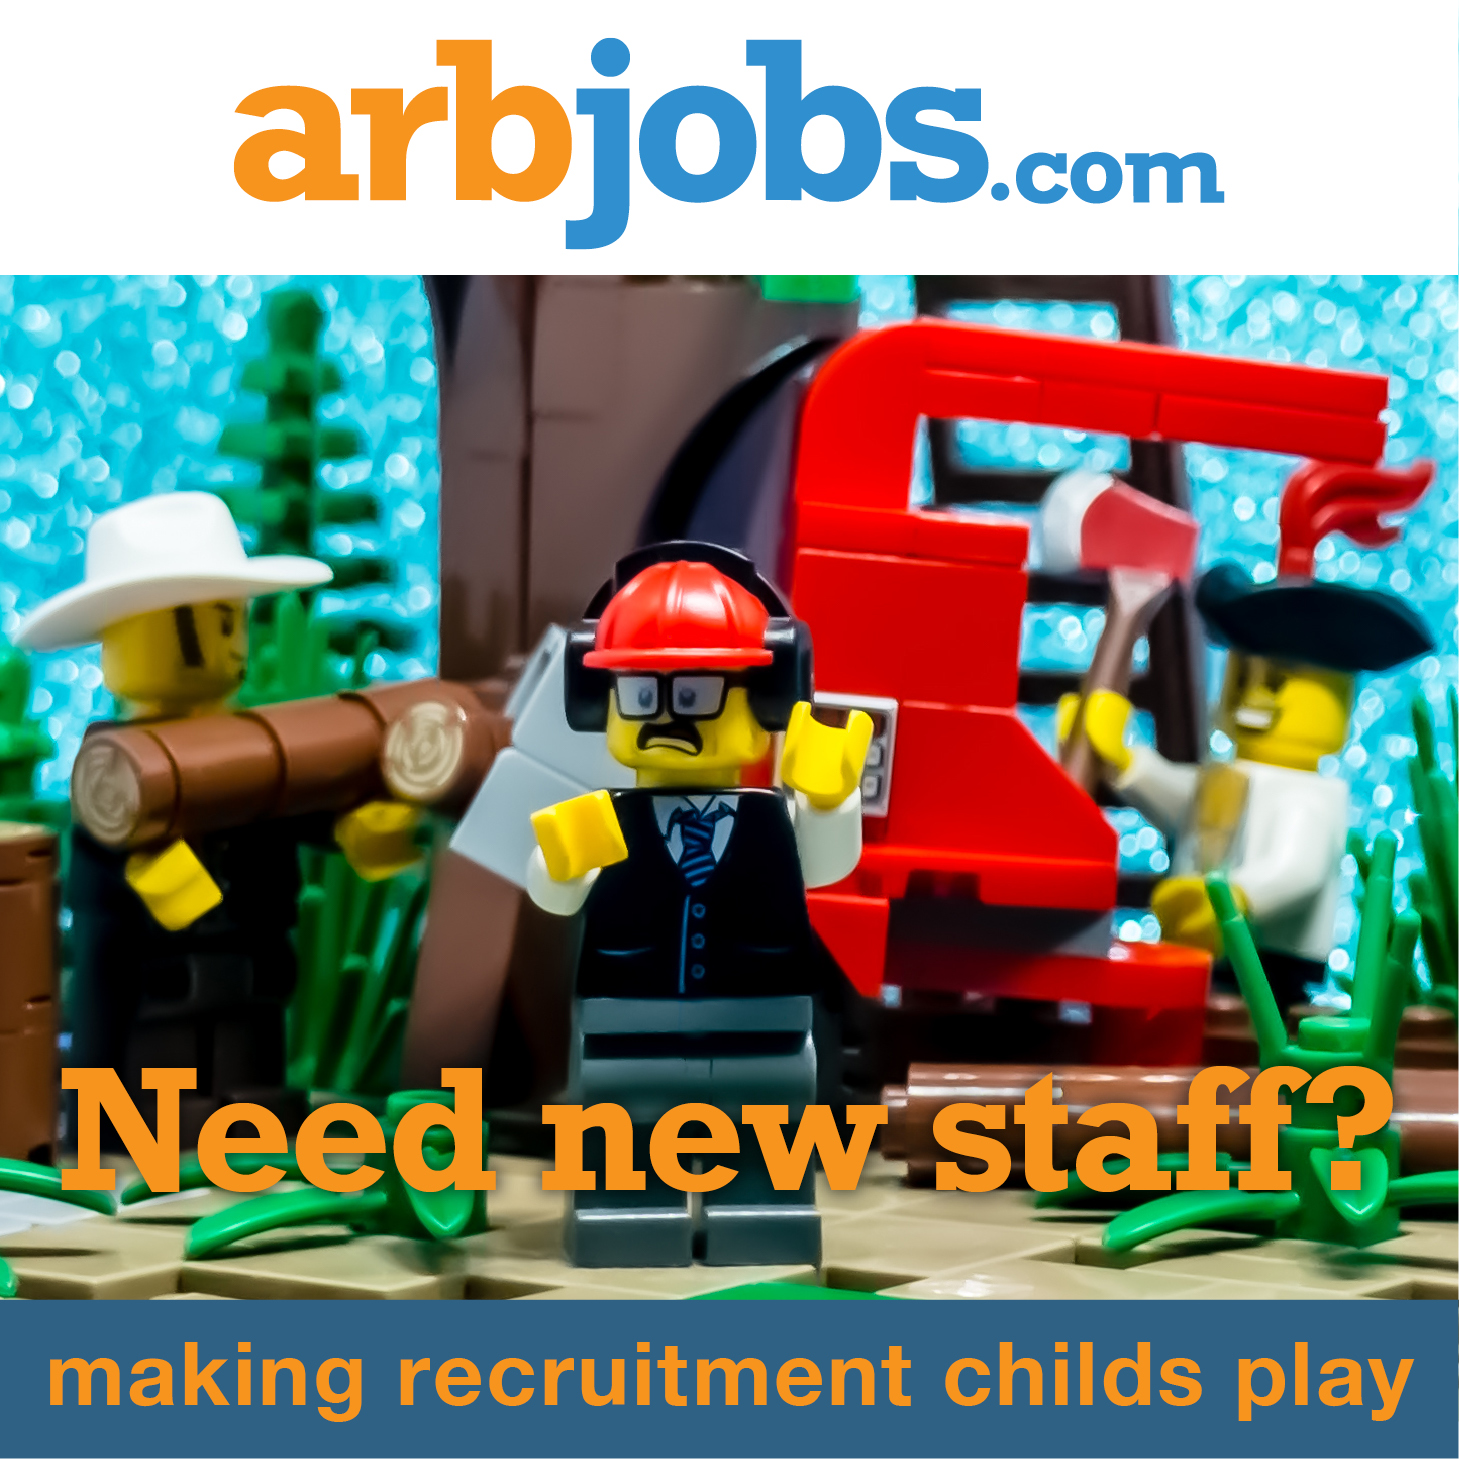 Arbjobs.com – Making recruitment childs play